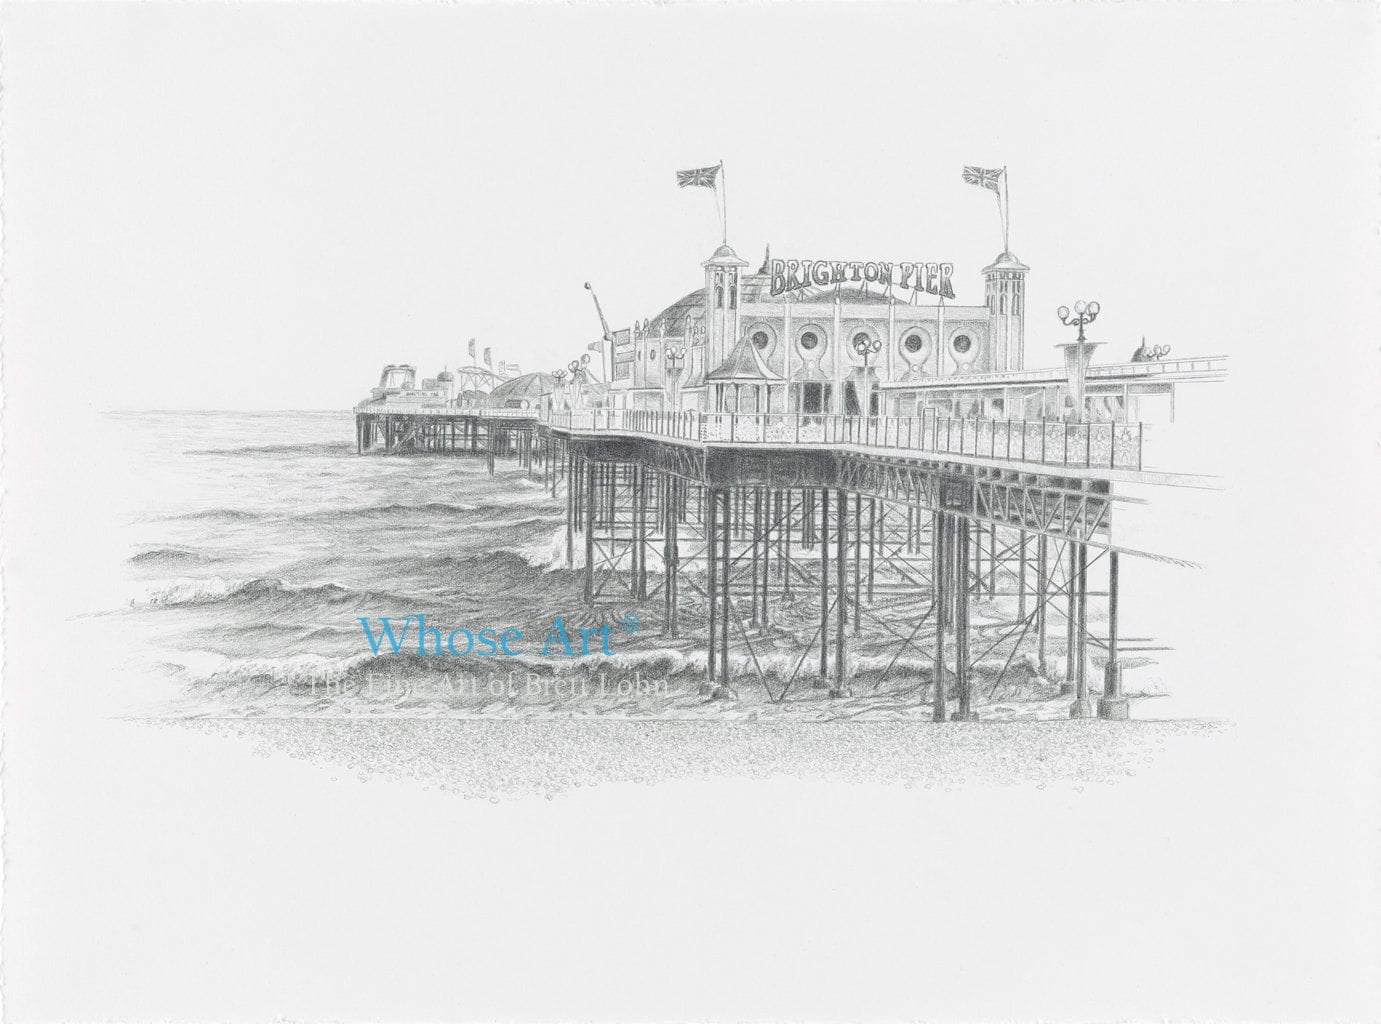 Brighton Pier Art Card featuring a pencil drawing of Brighton's Palace Pier from the front looking towards the sea.